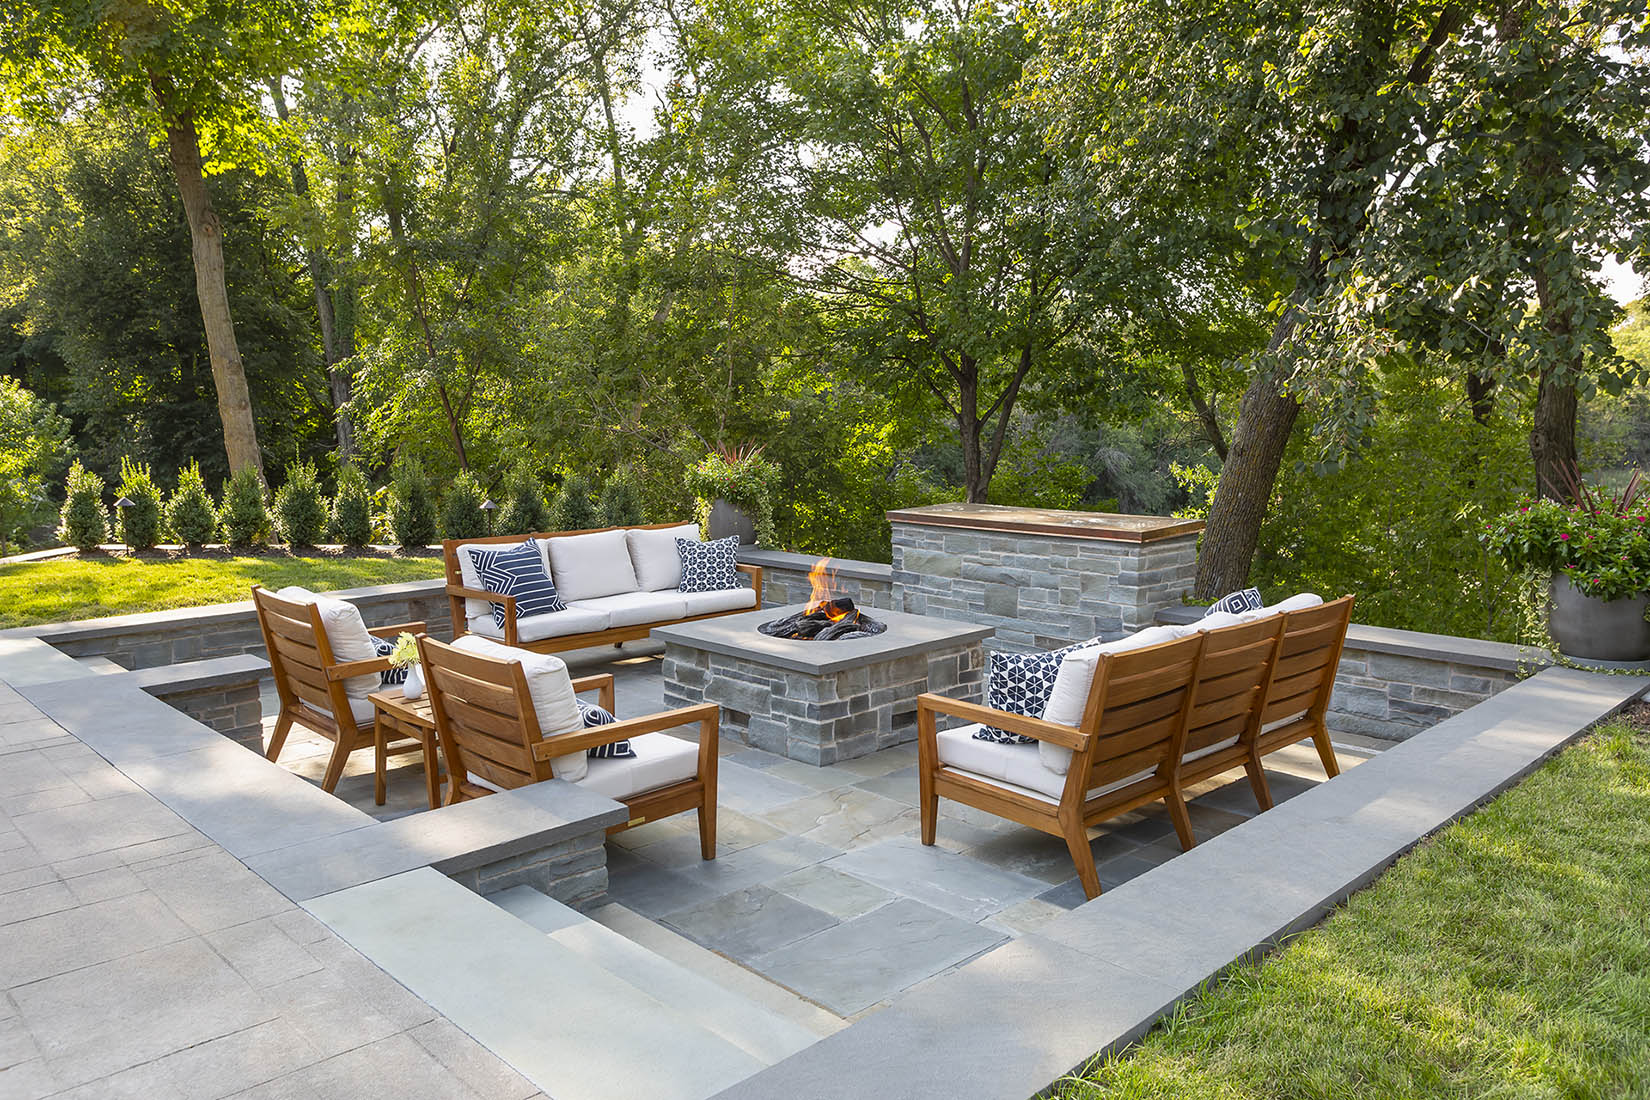 Sunken Blue Stone Fire Pit And Television Area In Garden With Teak